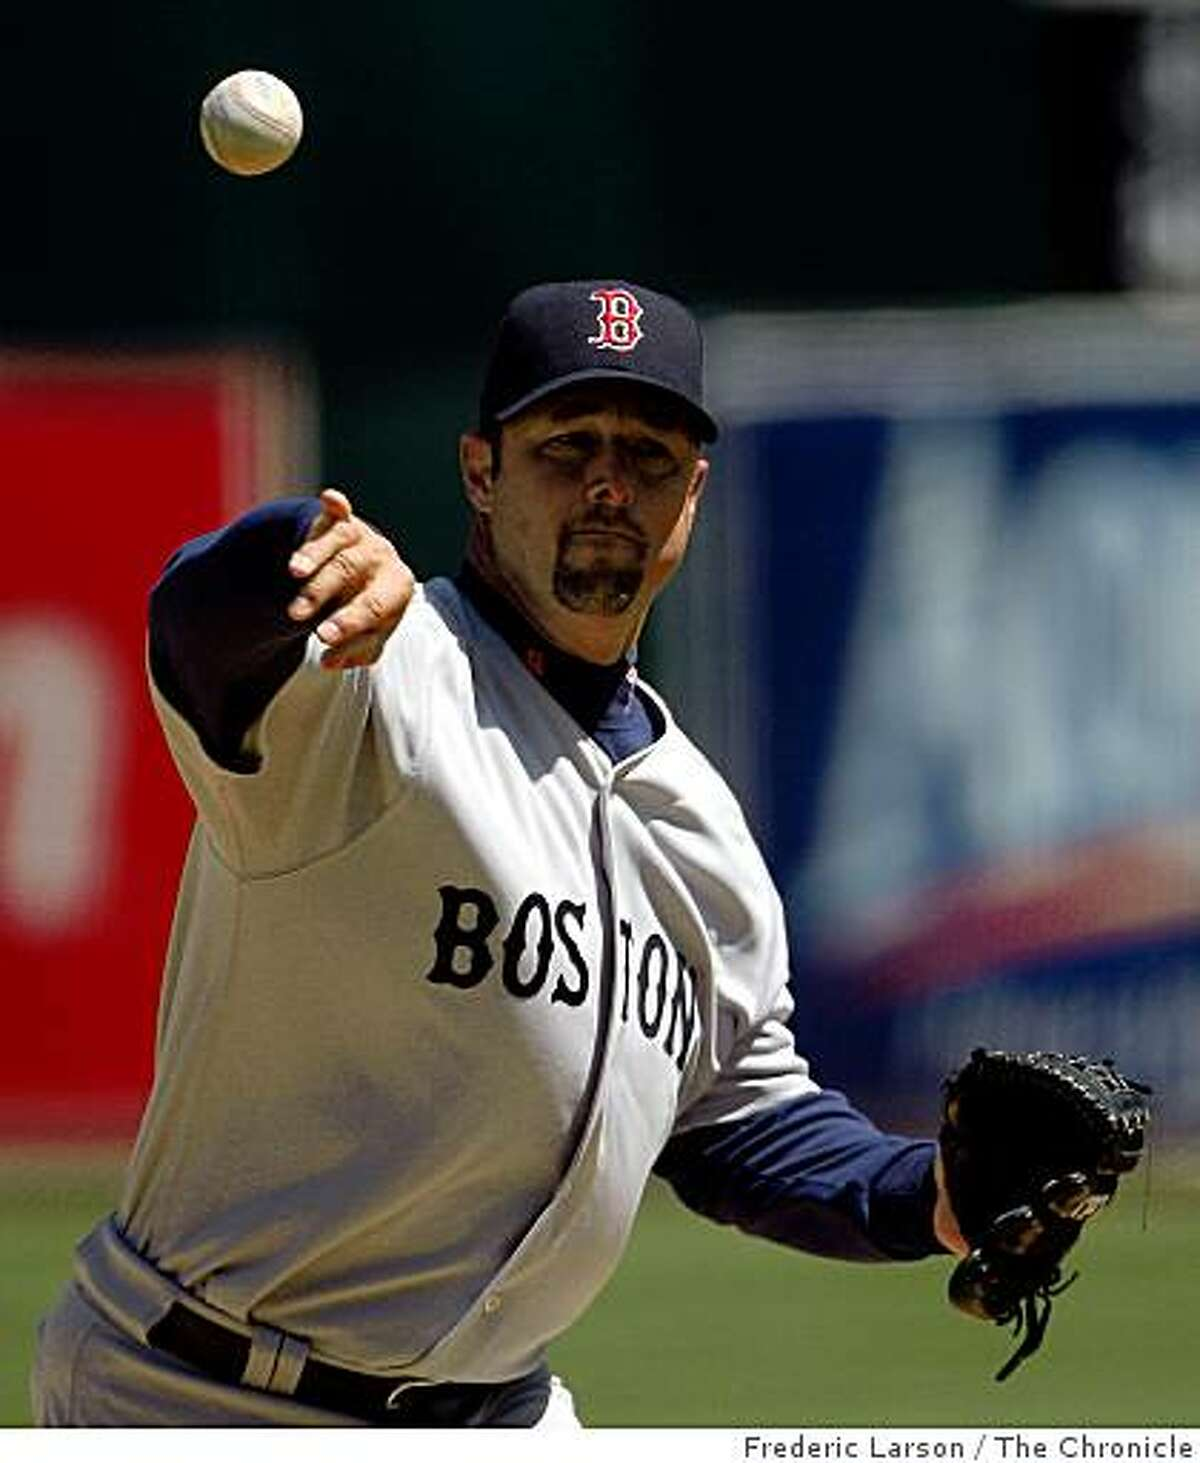 Boston Red Sox starting pitcher Tim Wakefield retires the sides against the Oakland A's at the Oakland Alameda County Coliseum on April 15, 2009.